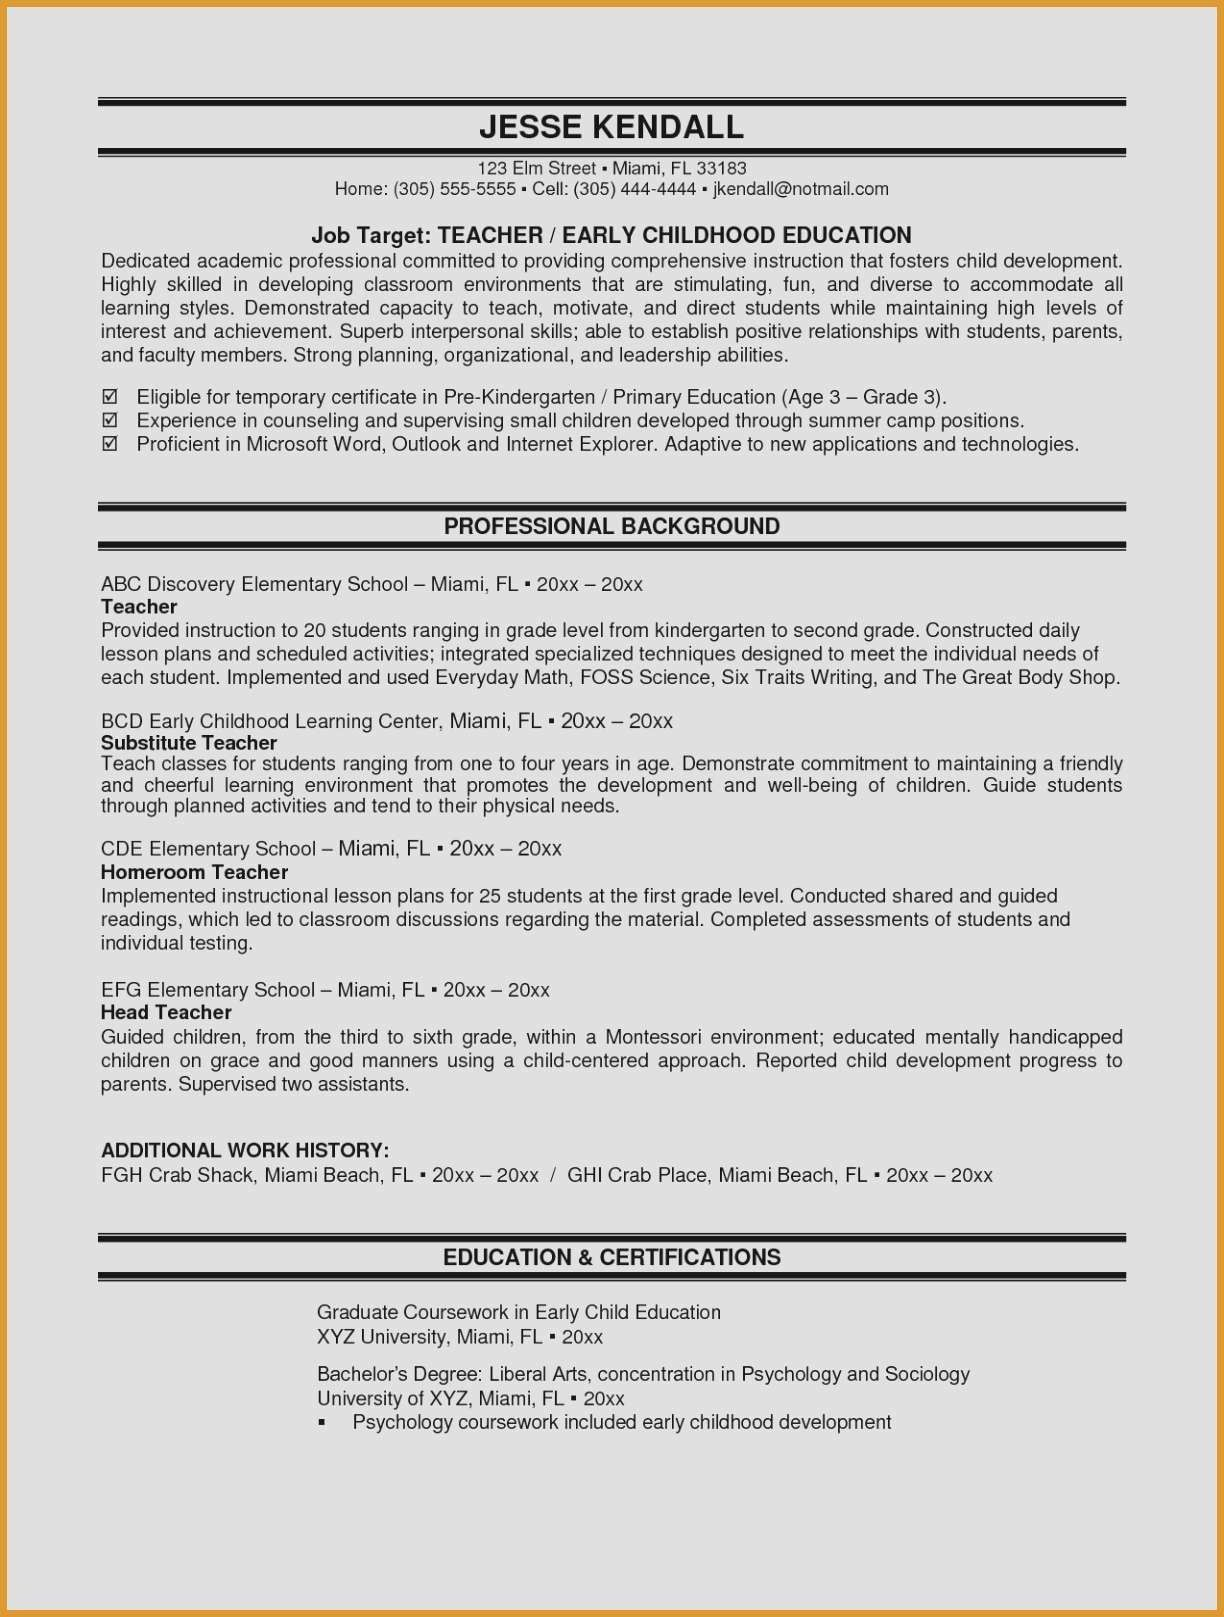 71 Elegant Stock Of Resume Examples With Education In Progress Check More At Https Www Ourpetscrawley Com 71 Elegant Stock Of Resume Examples With Mainan Anak